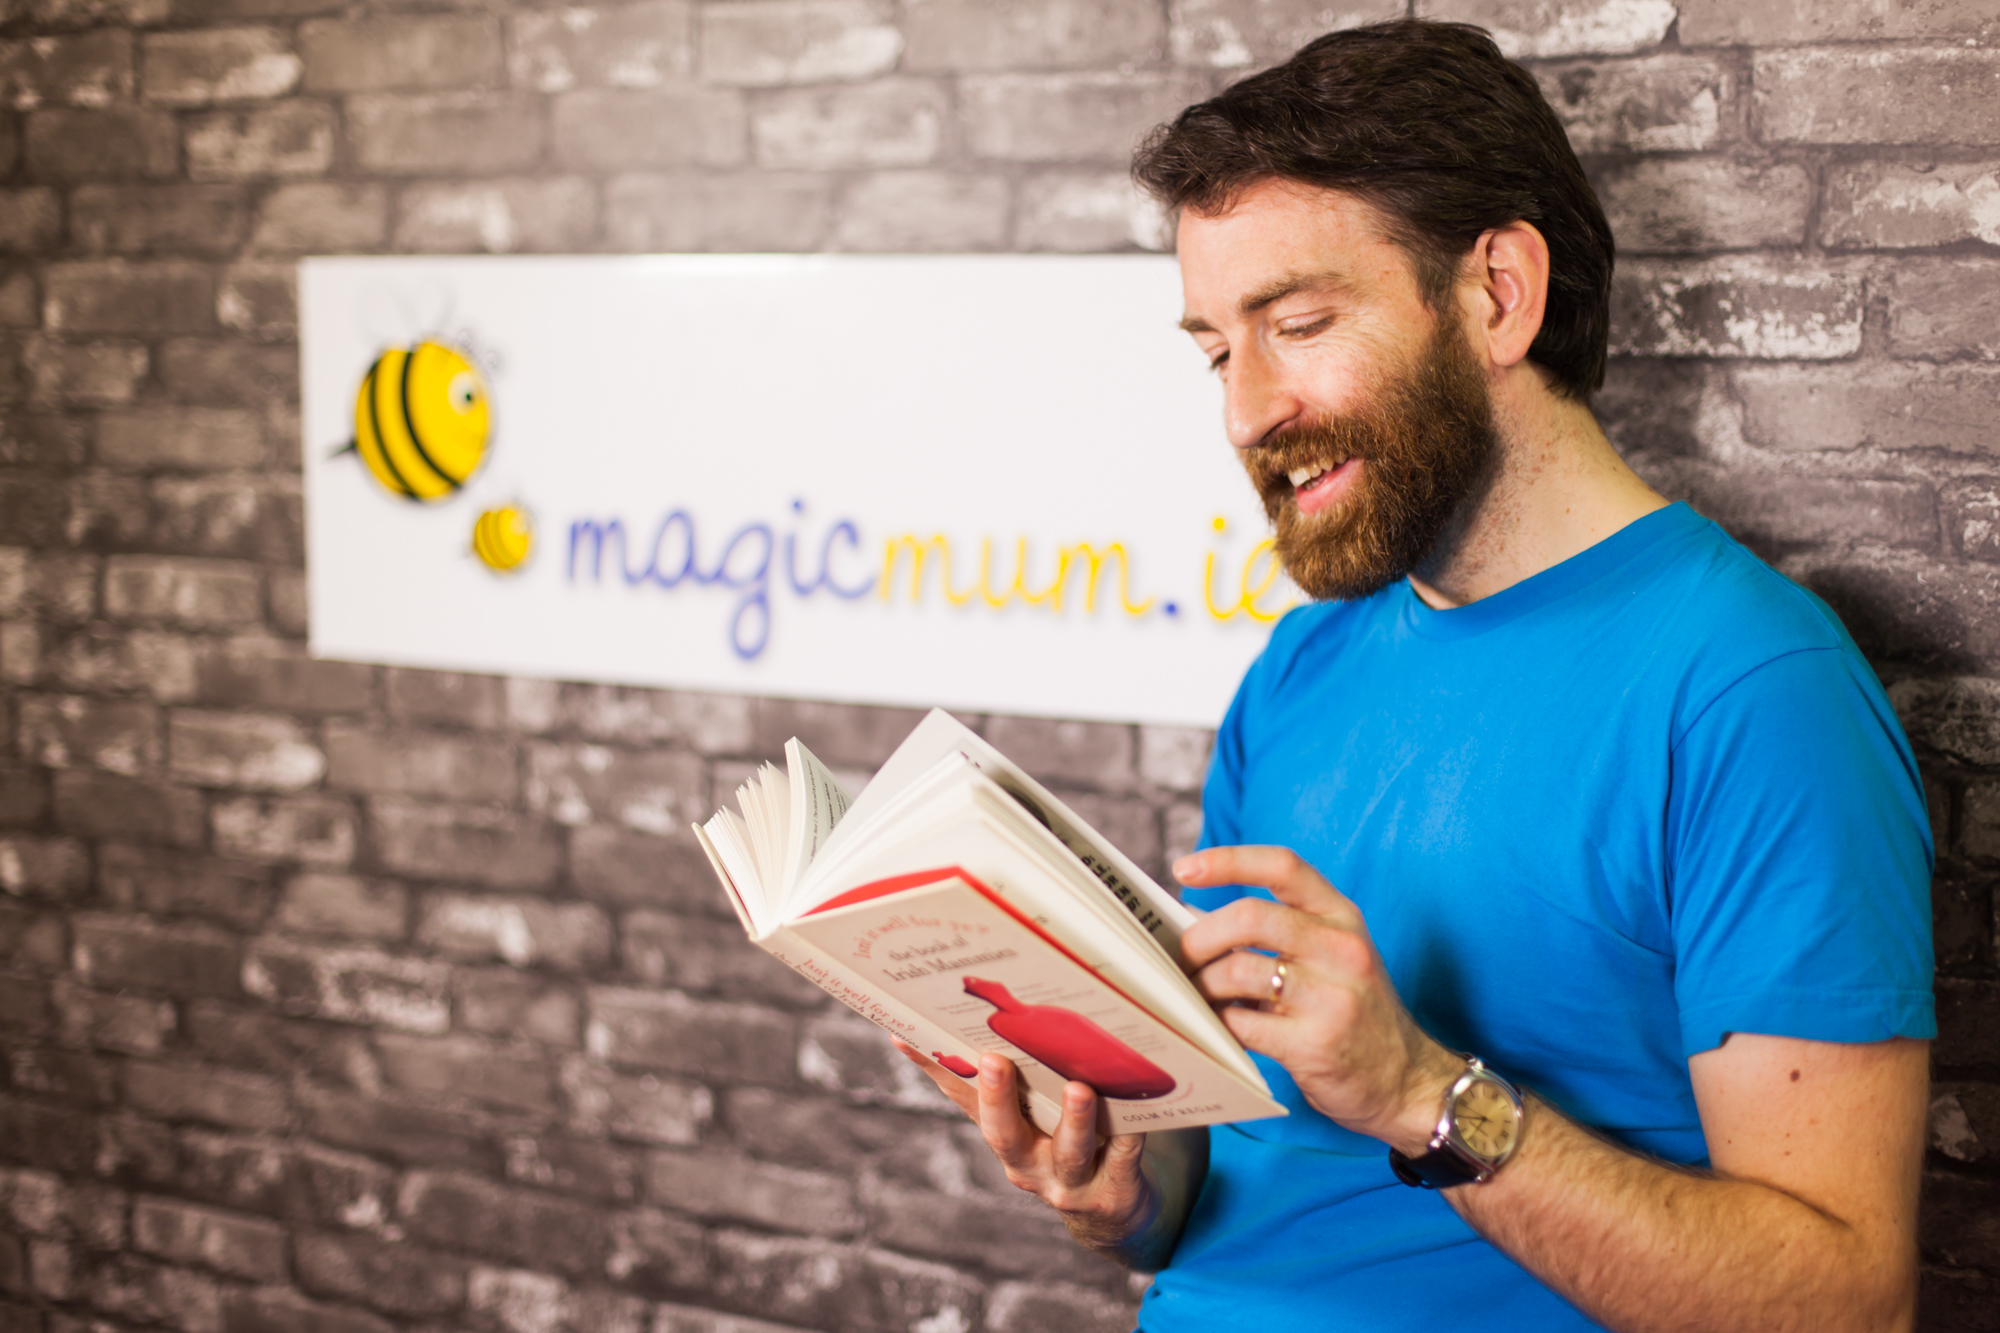 MagicMum is delighted to introduce its new Daddy blogger, Colm O'Regan.